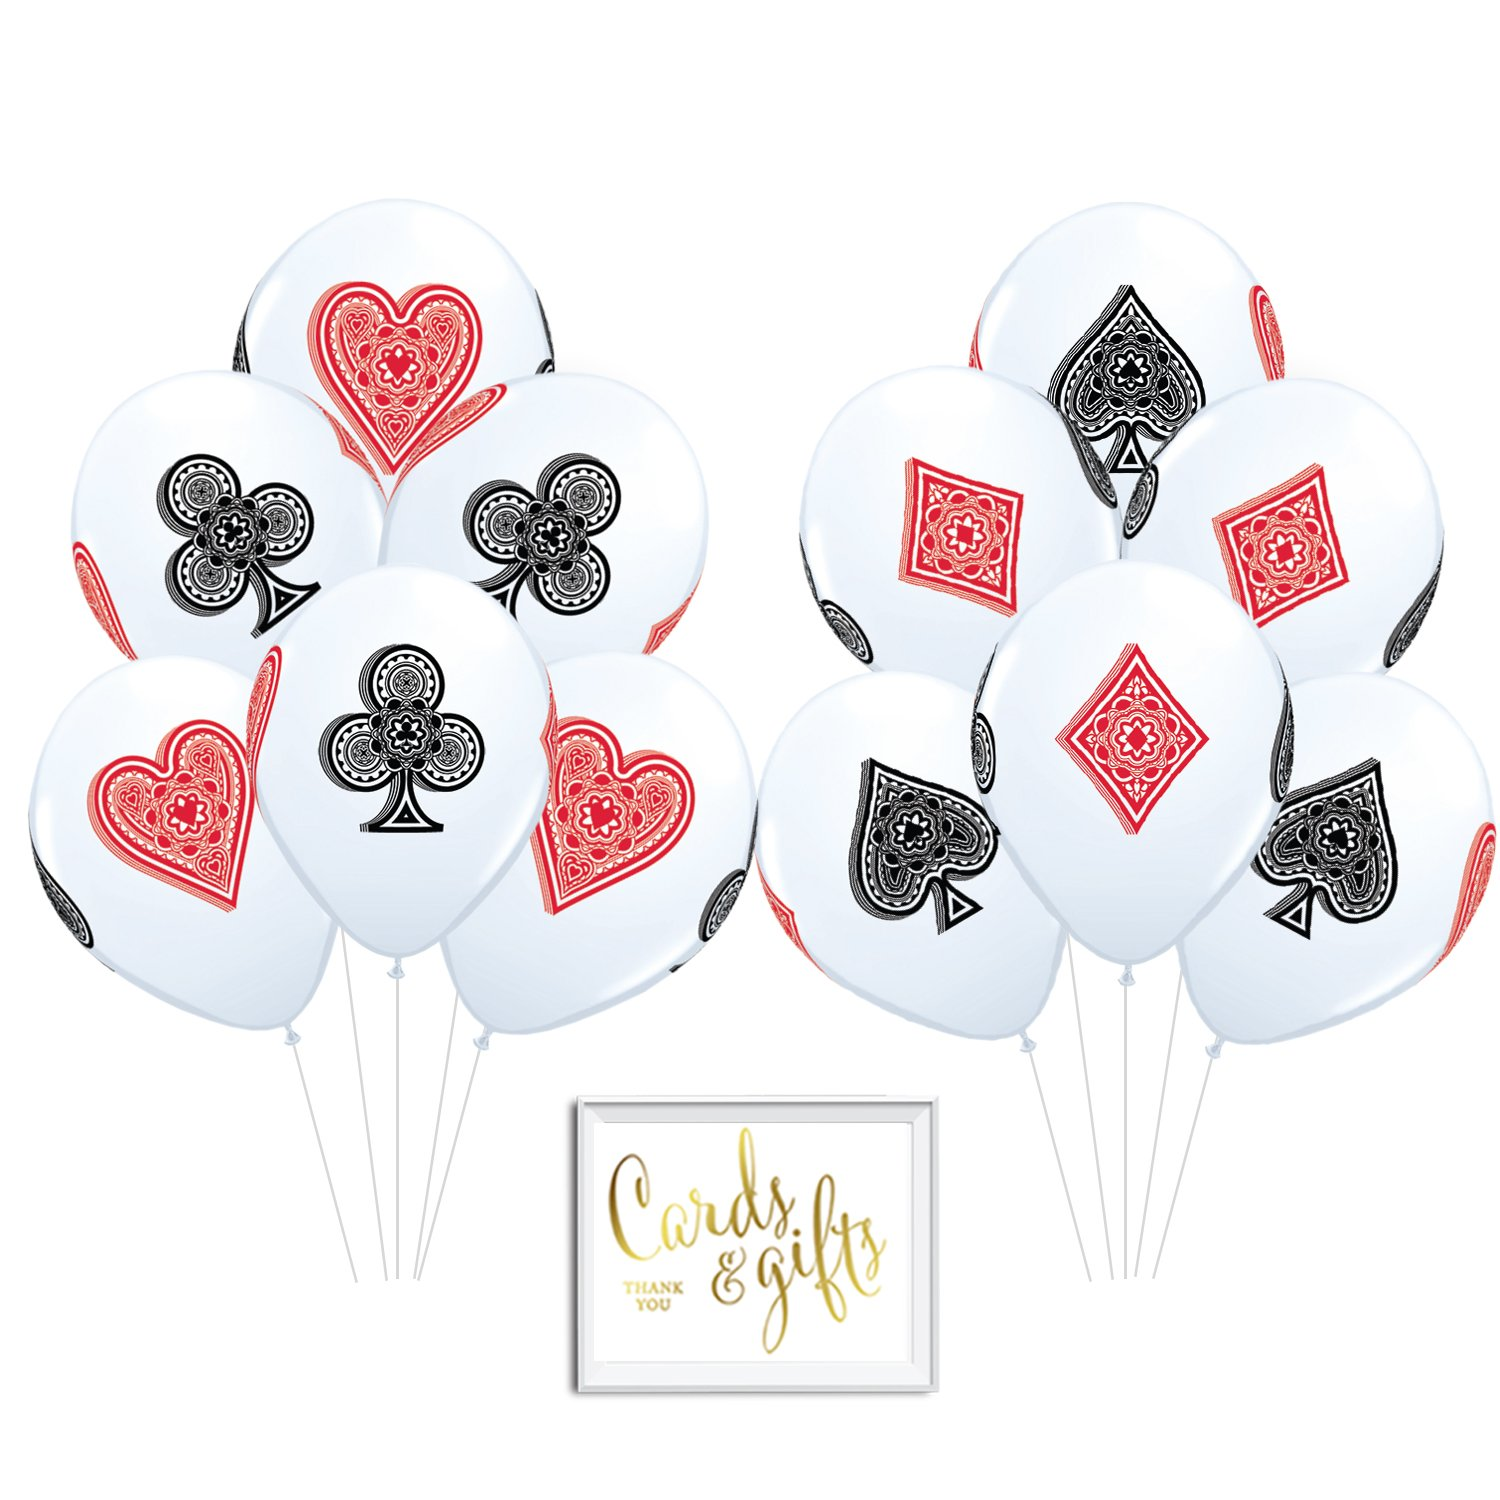 Andaz Press Bulk High Quality Latex Balloon Party Kit with Gold Cards & Gifts Sign, Casino Bingo Cards Suite Hearts Club Diamond Spade Printed 11-inch Balloons, Wholesale 50-Pack by Andaz Press